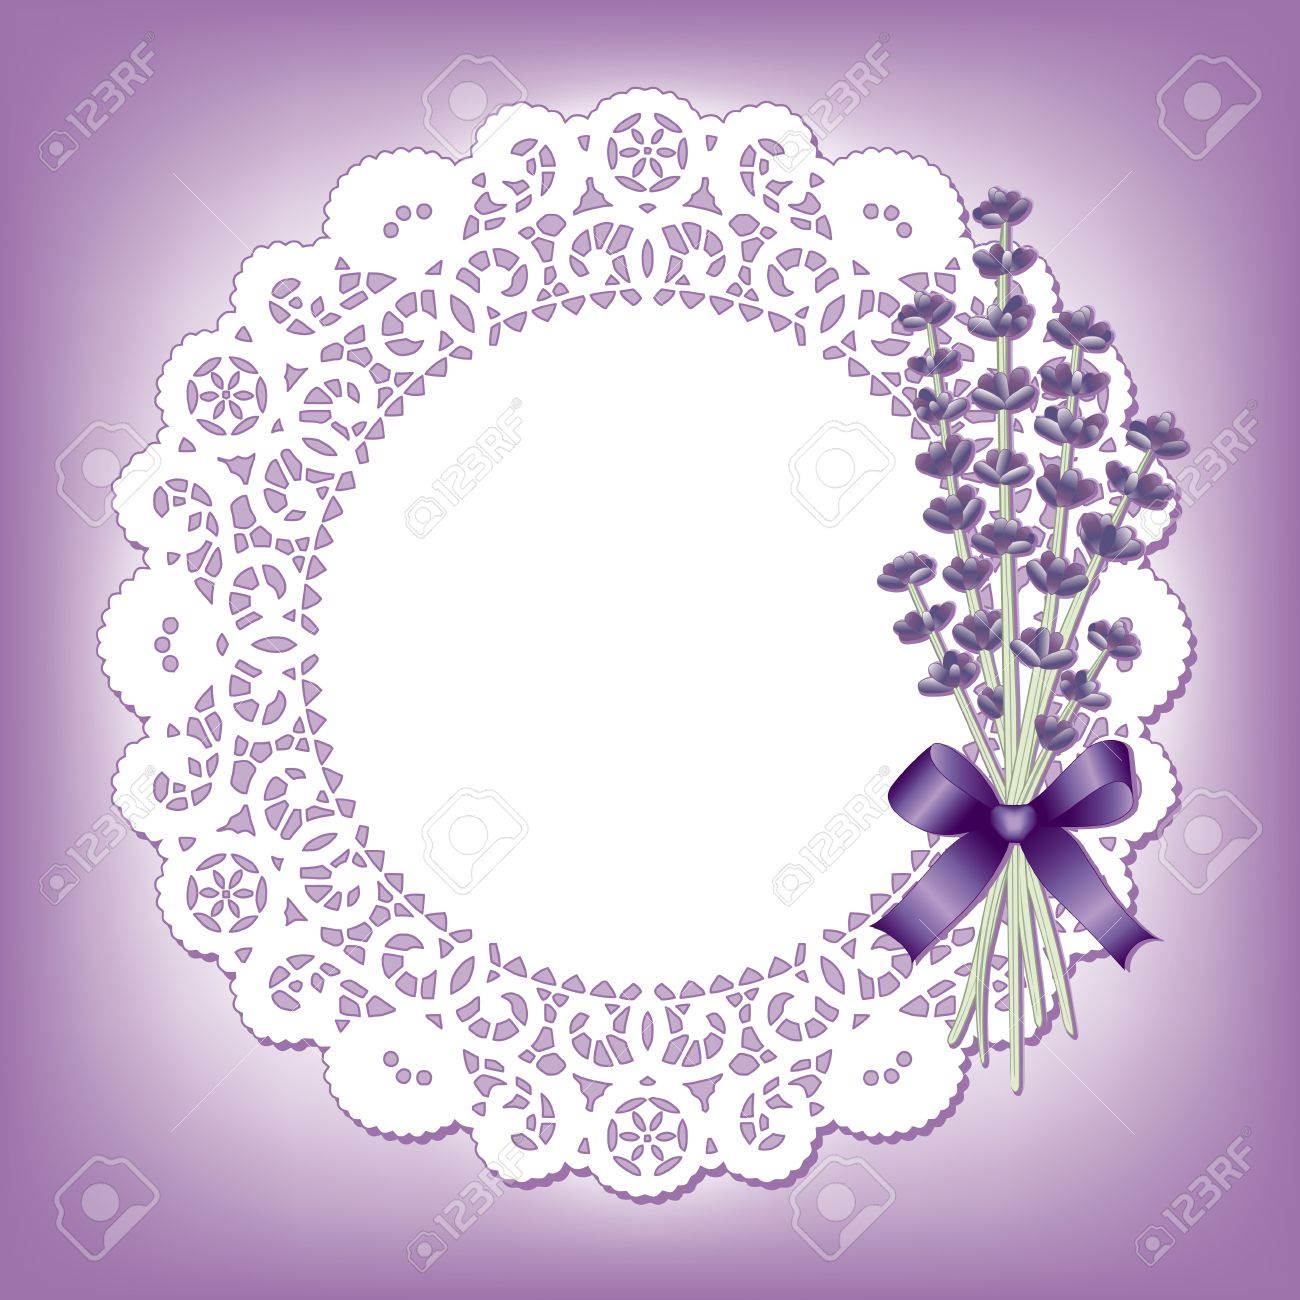 Outline athens skyline with blue buildings and copy space stock vector - Copy Place Vintage Lace Doily With Sweet Lavender Flower Bouquet Copy Space Violet